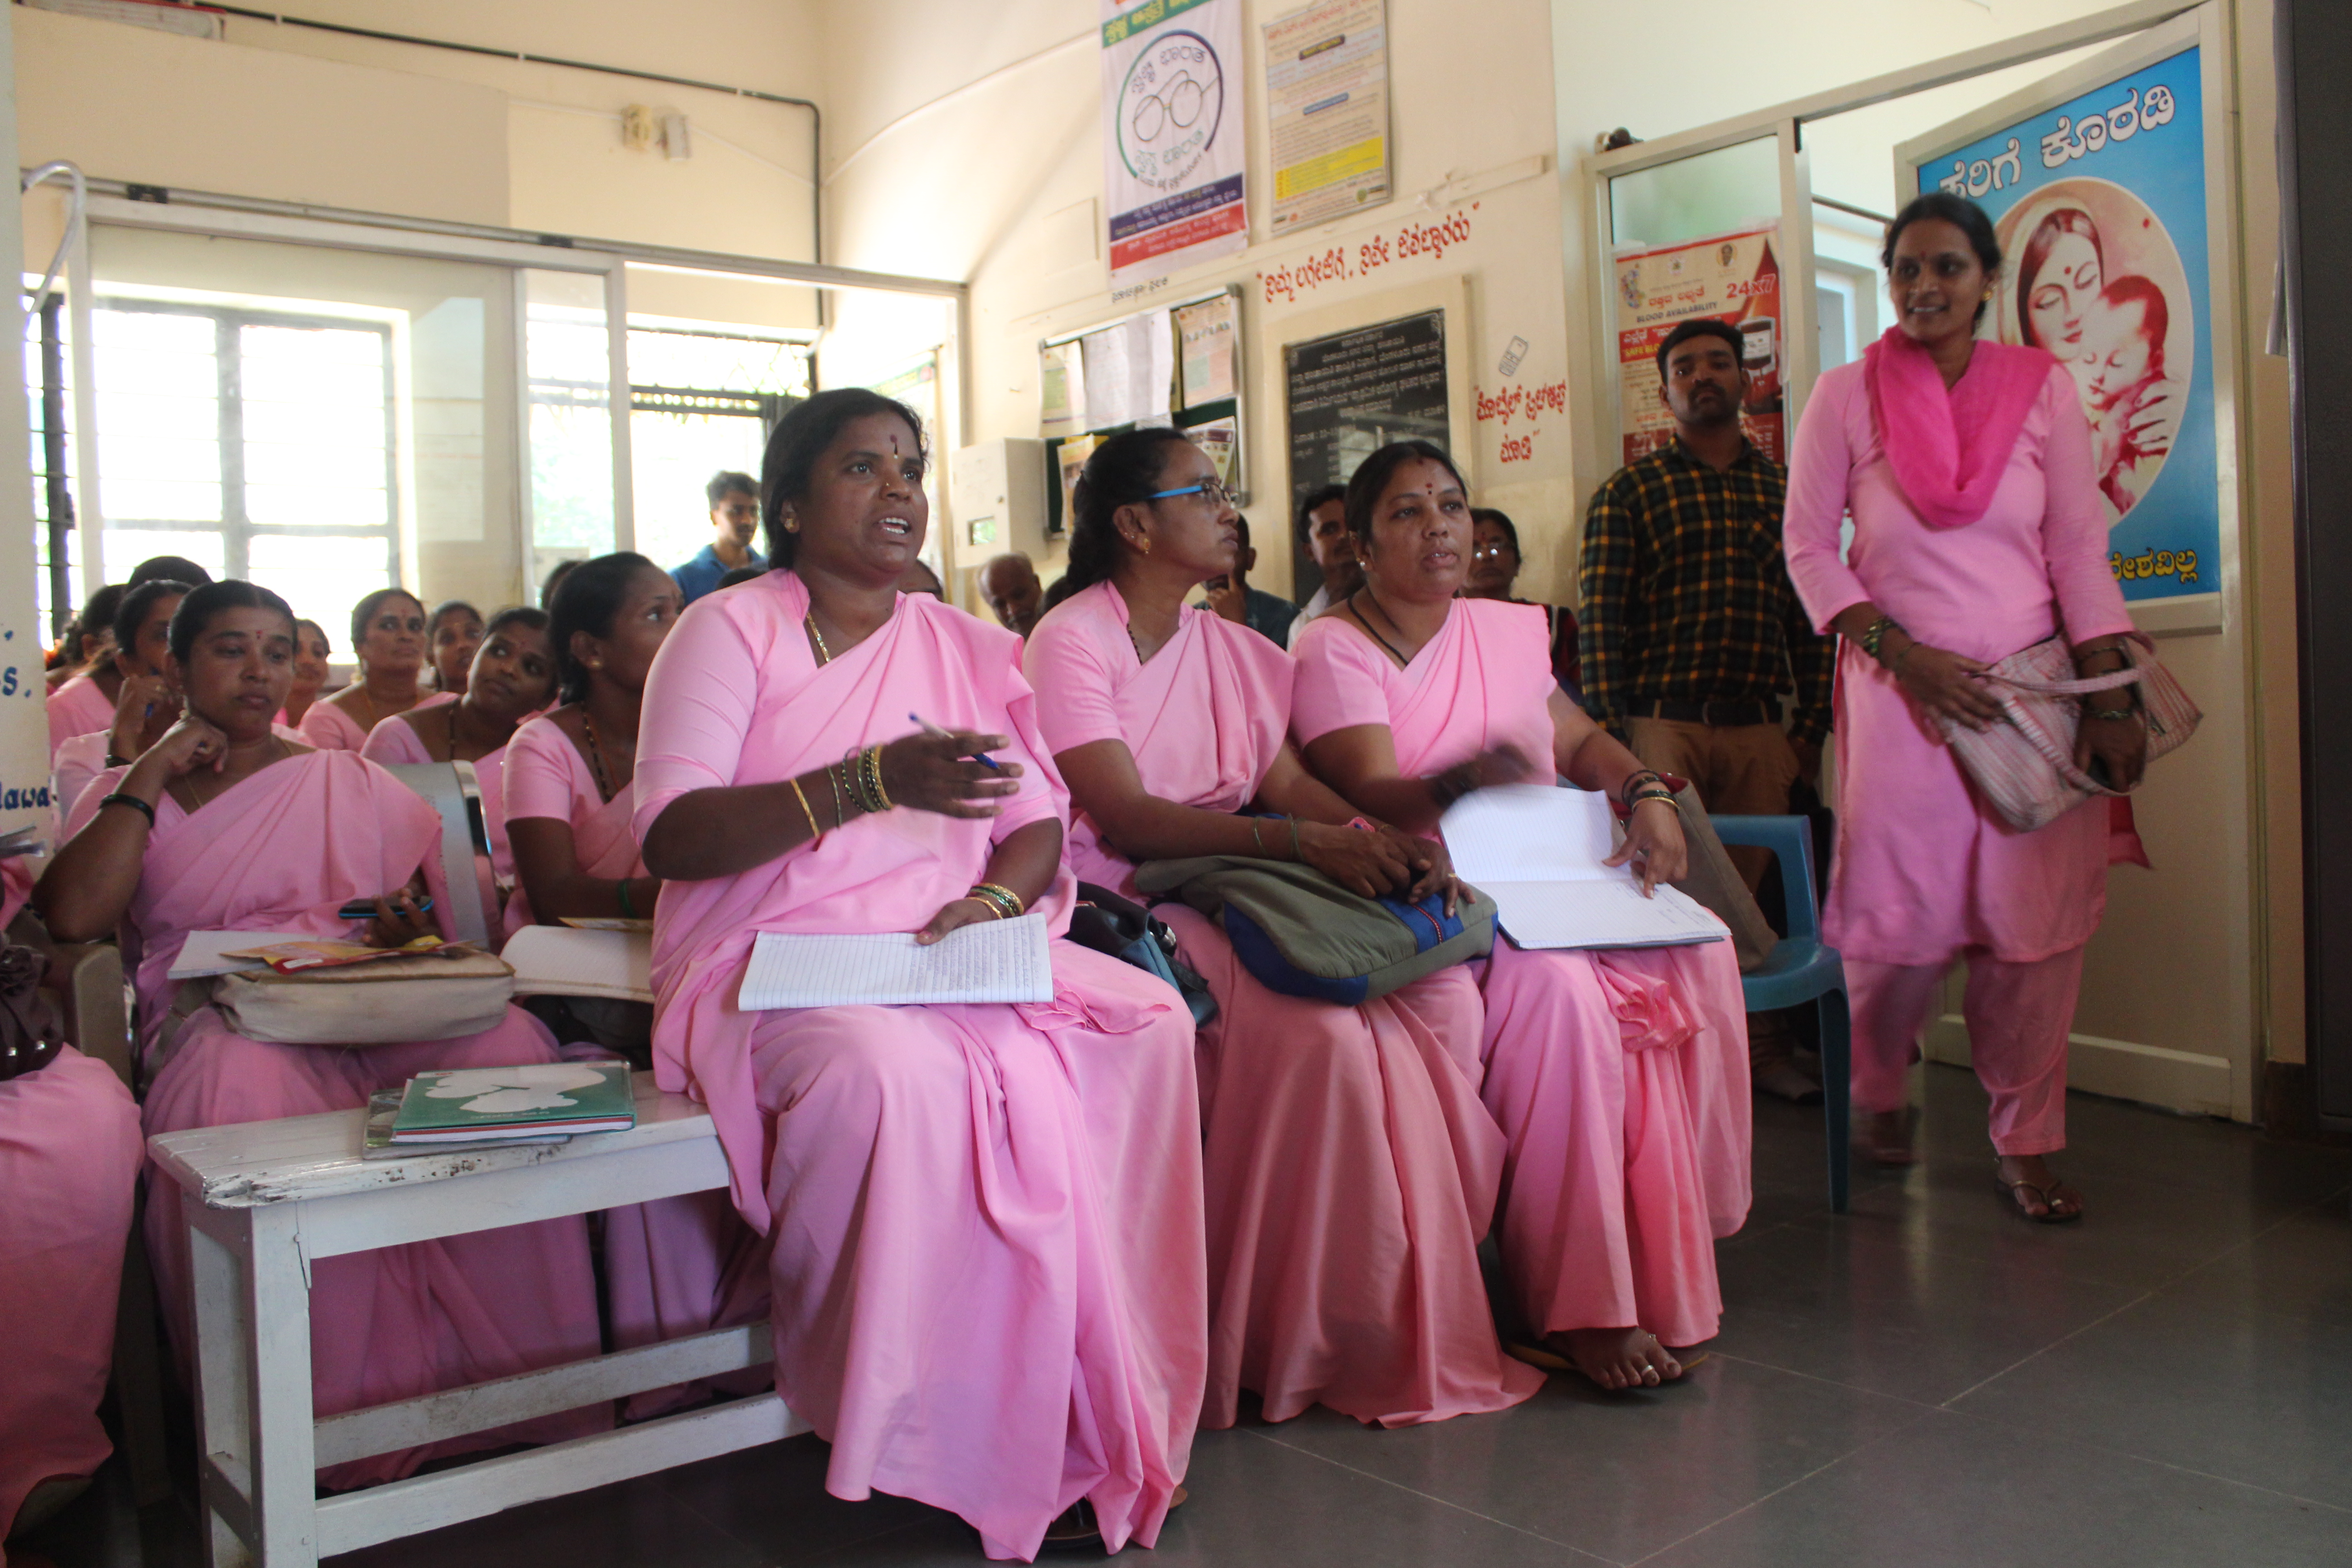 Accredited Social Health Activists being trained on how to counsel women seeking abortion at Madanayakana Halli PHC on the outskirts of Bengaluru. Photo: Jyotsna Singh